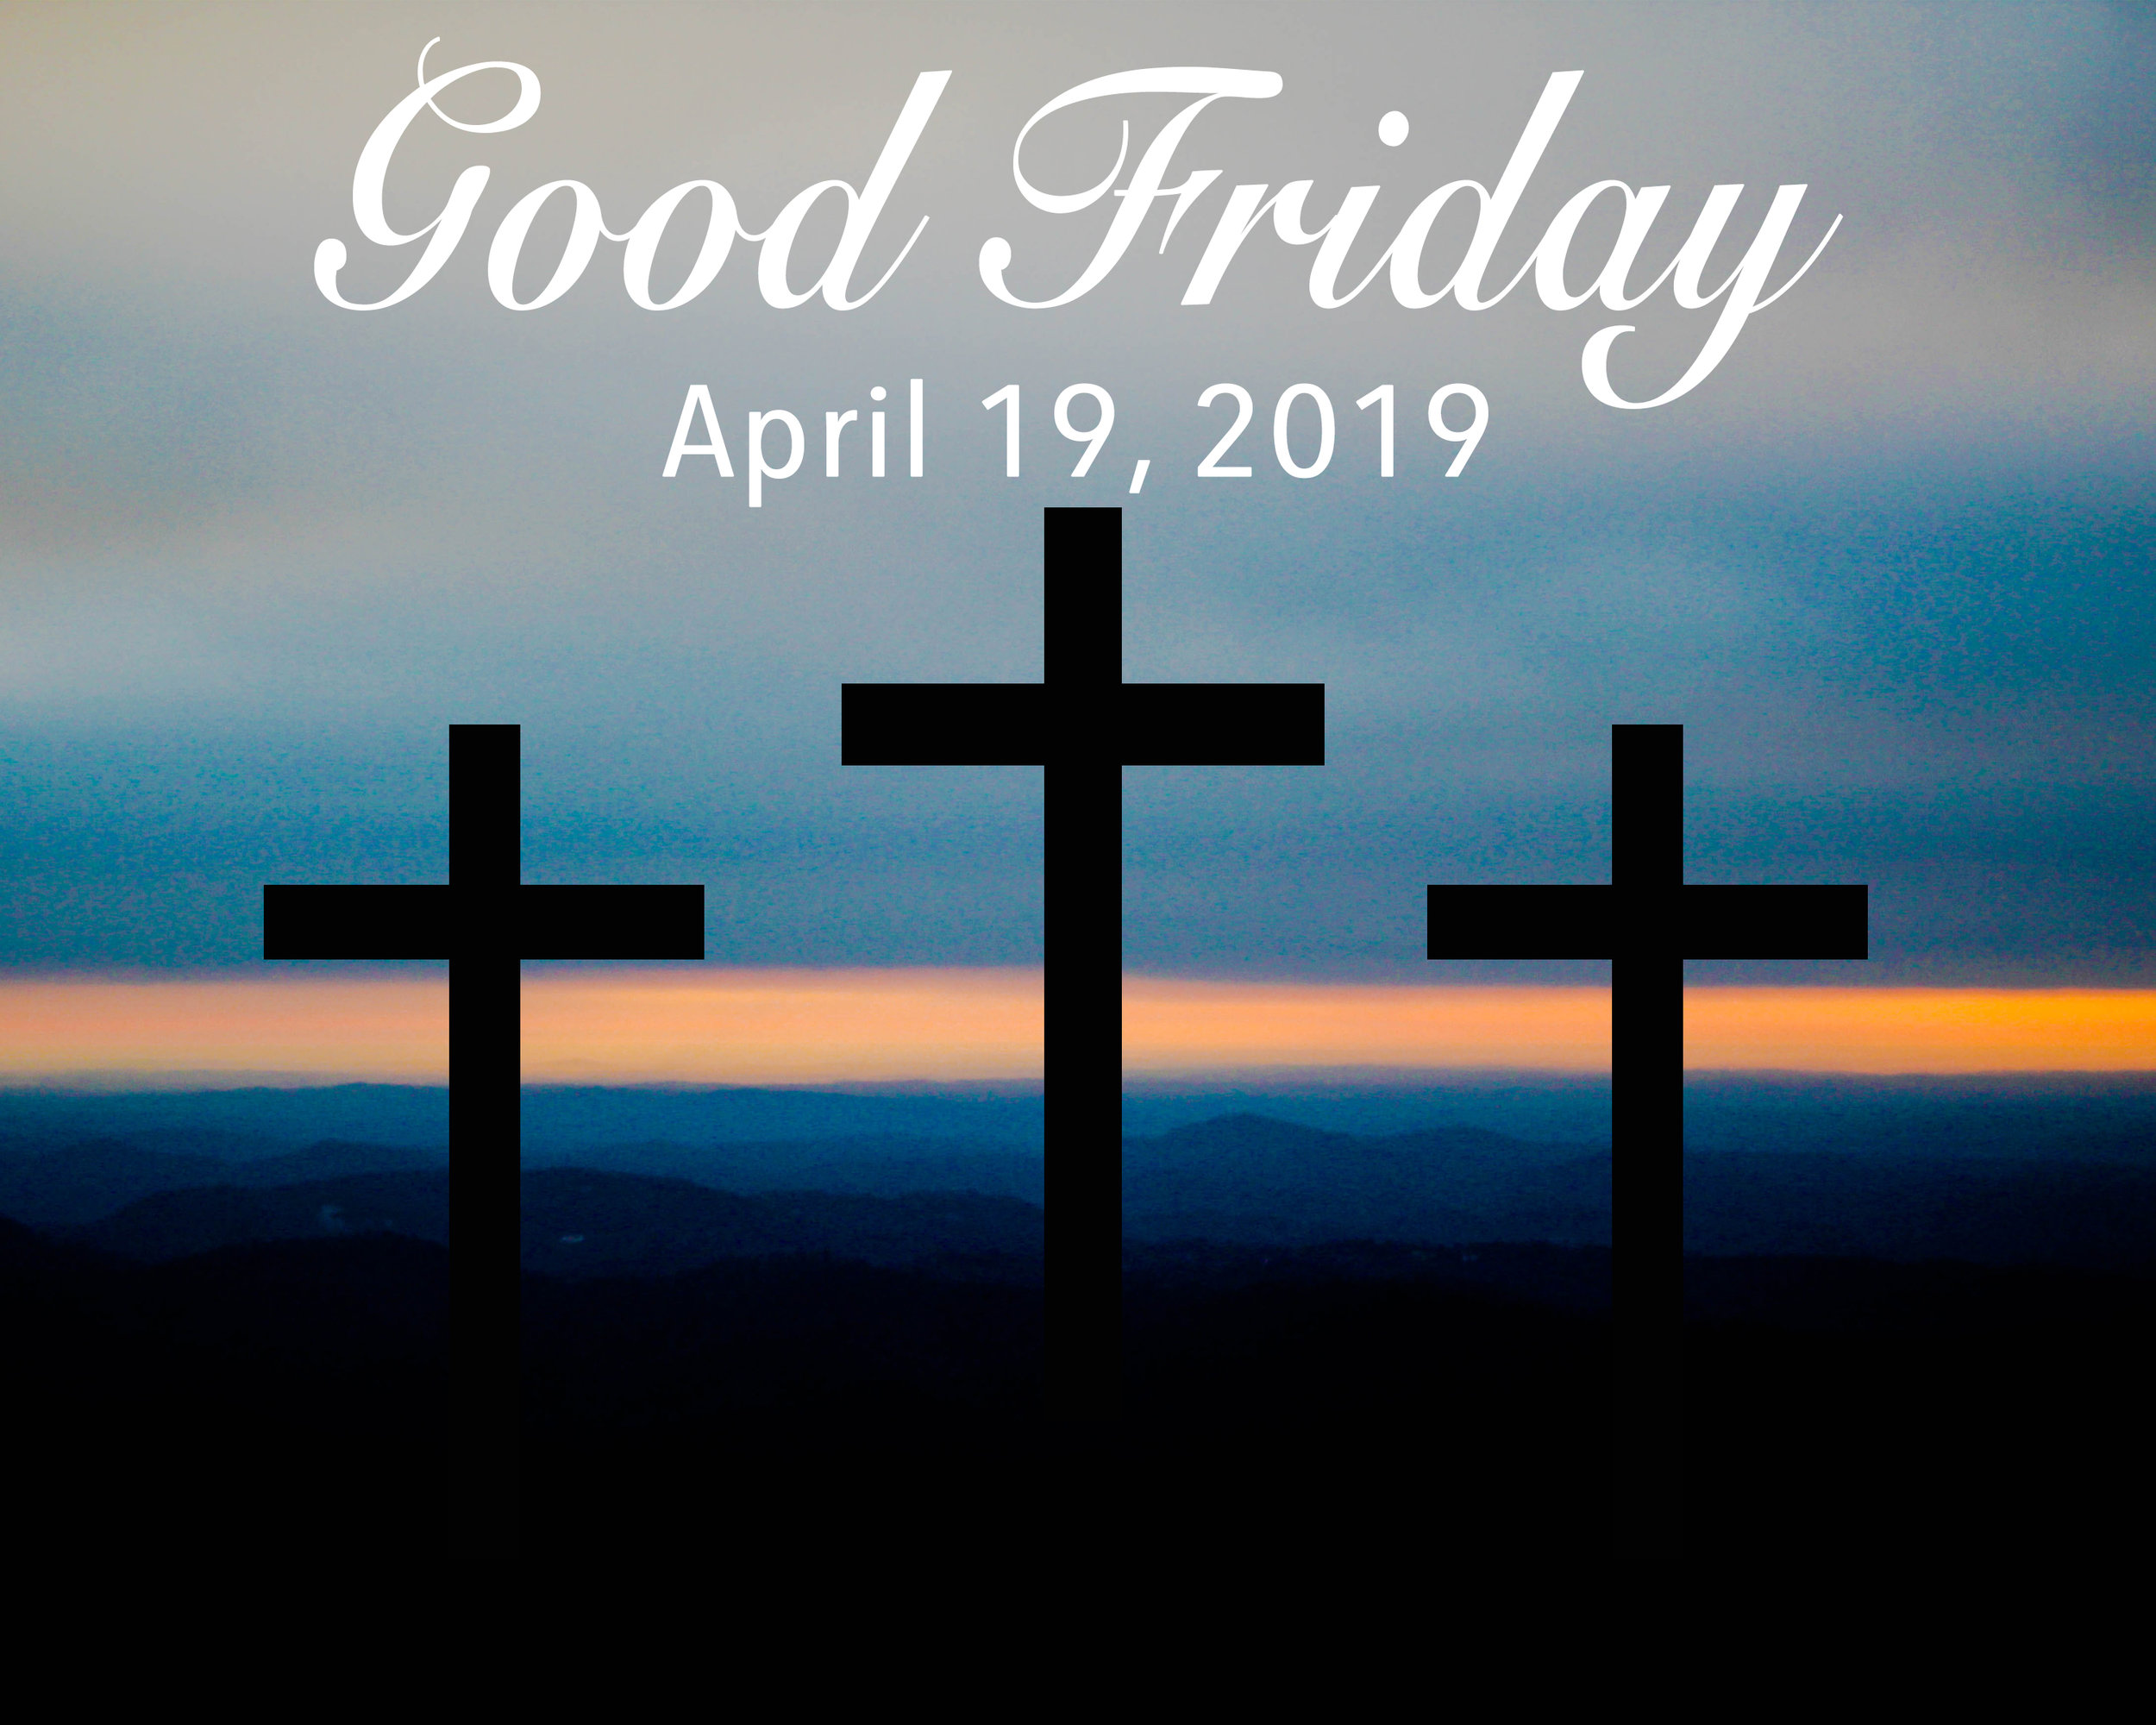 Have a relaxing Good Friday today because there are no classes. However, remember the reason why we celebrate today.